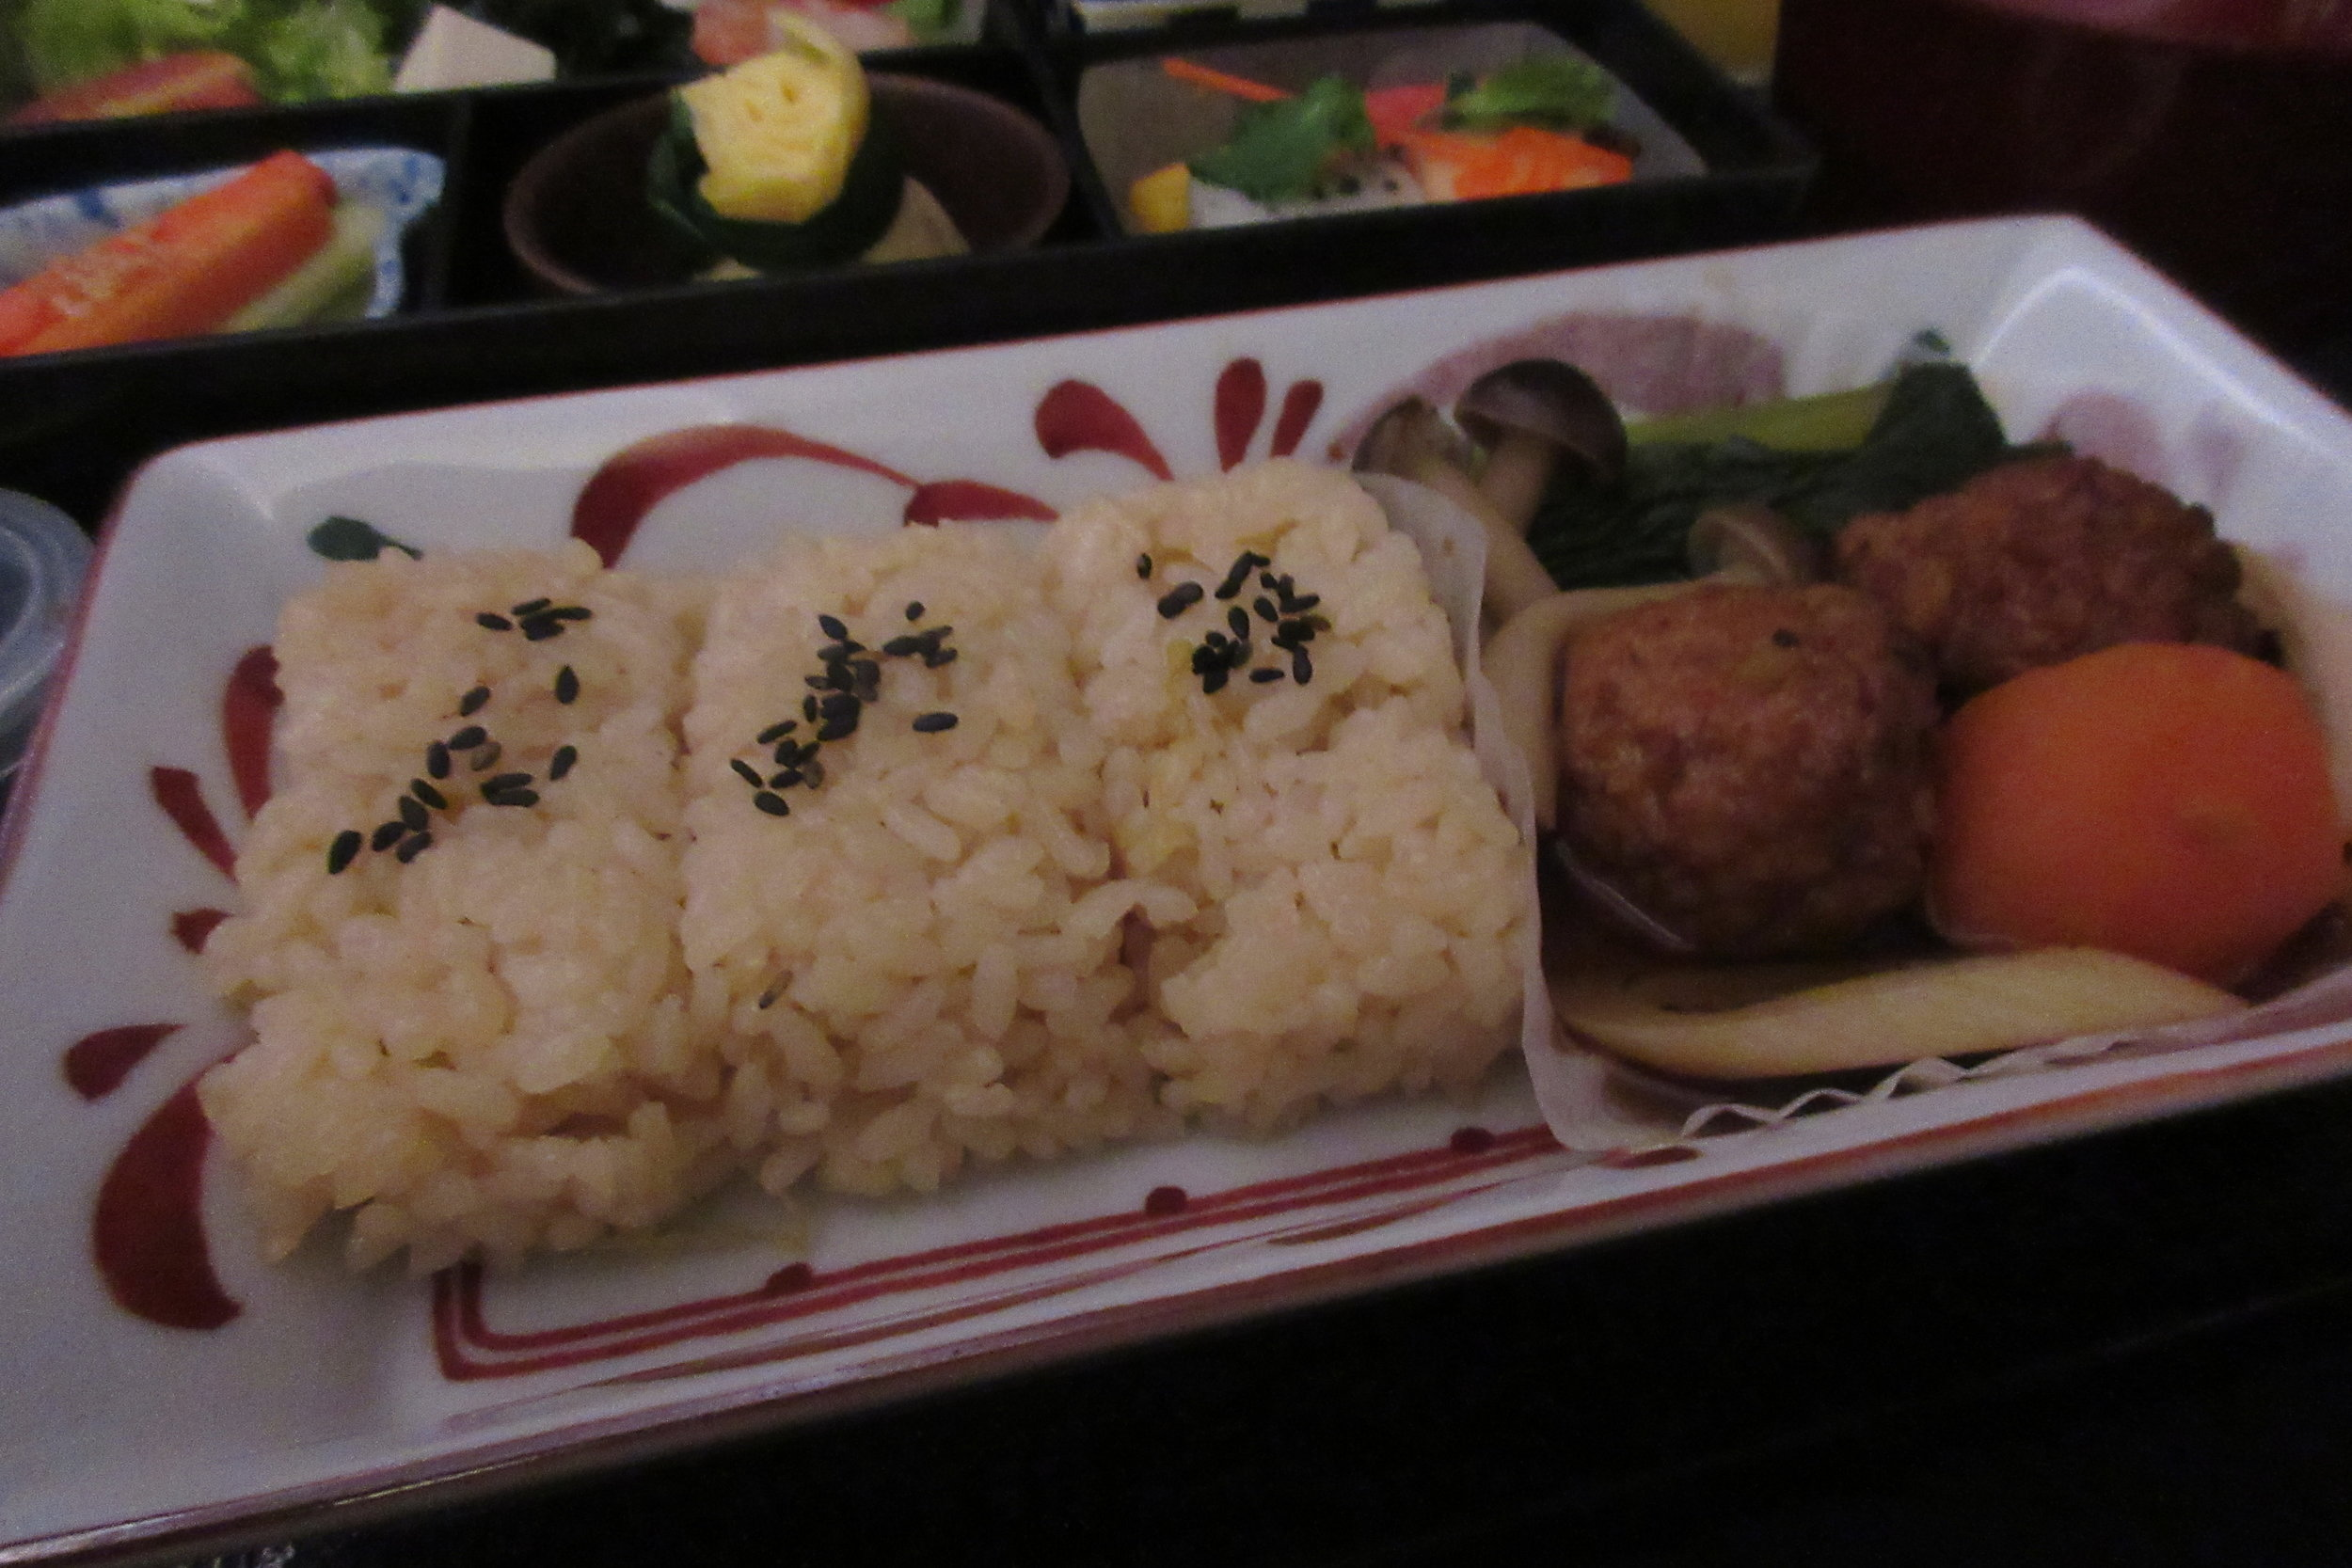 Japan Airlines business class – Chicken meatball teriyaki with rice